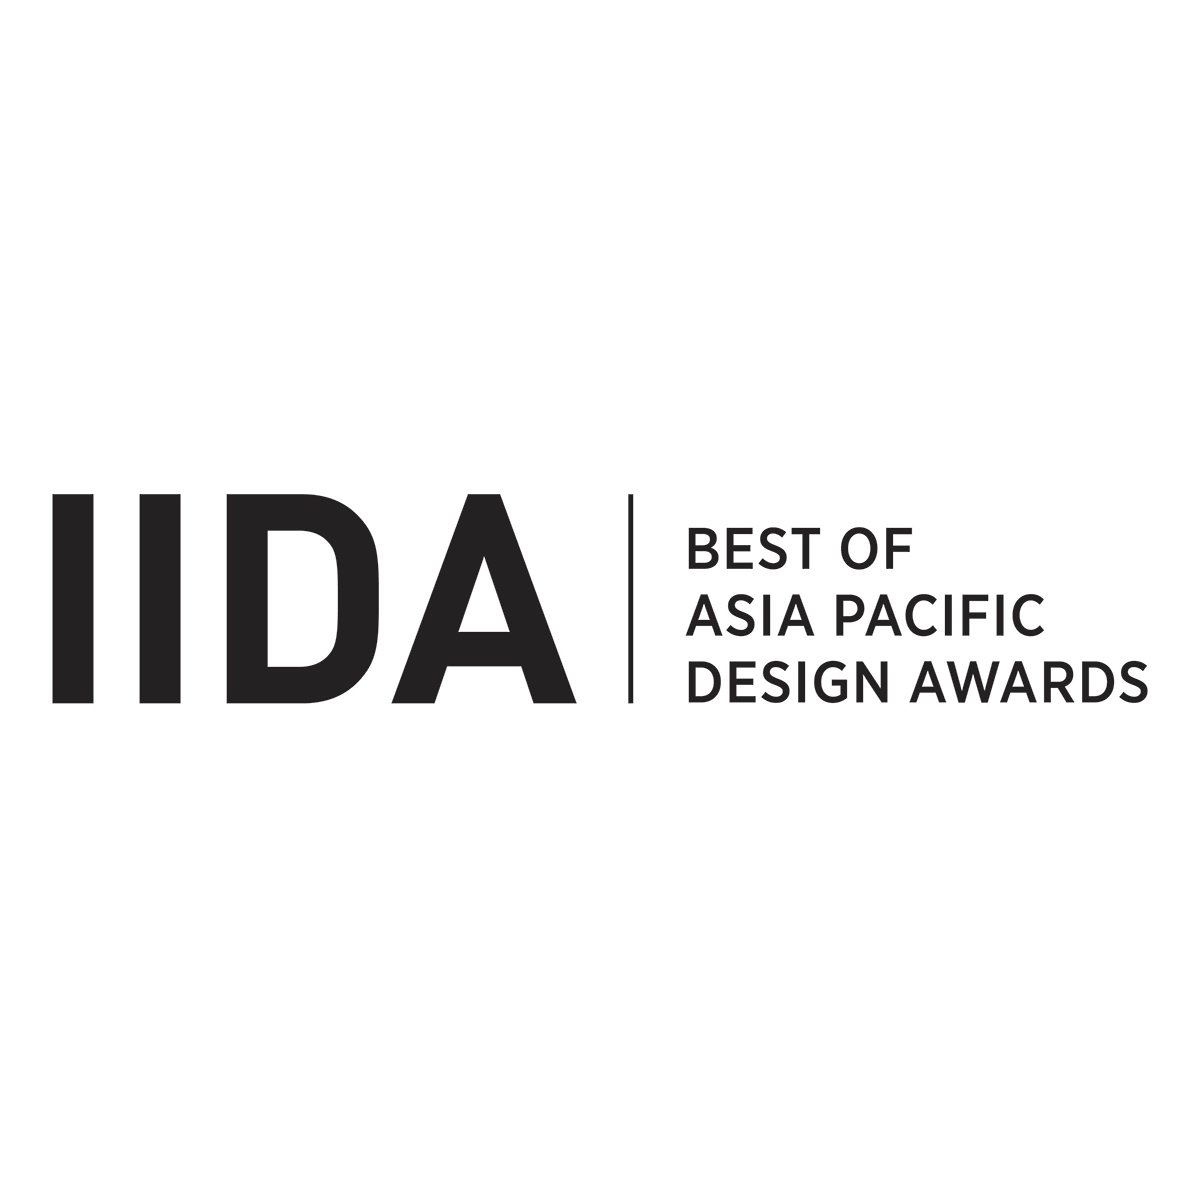 IIDA Announces Winners of the 2019 Annual Best of Asia Pacific Design Awards